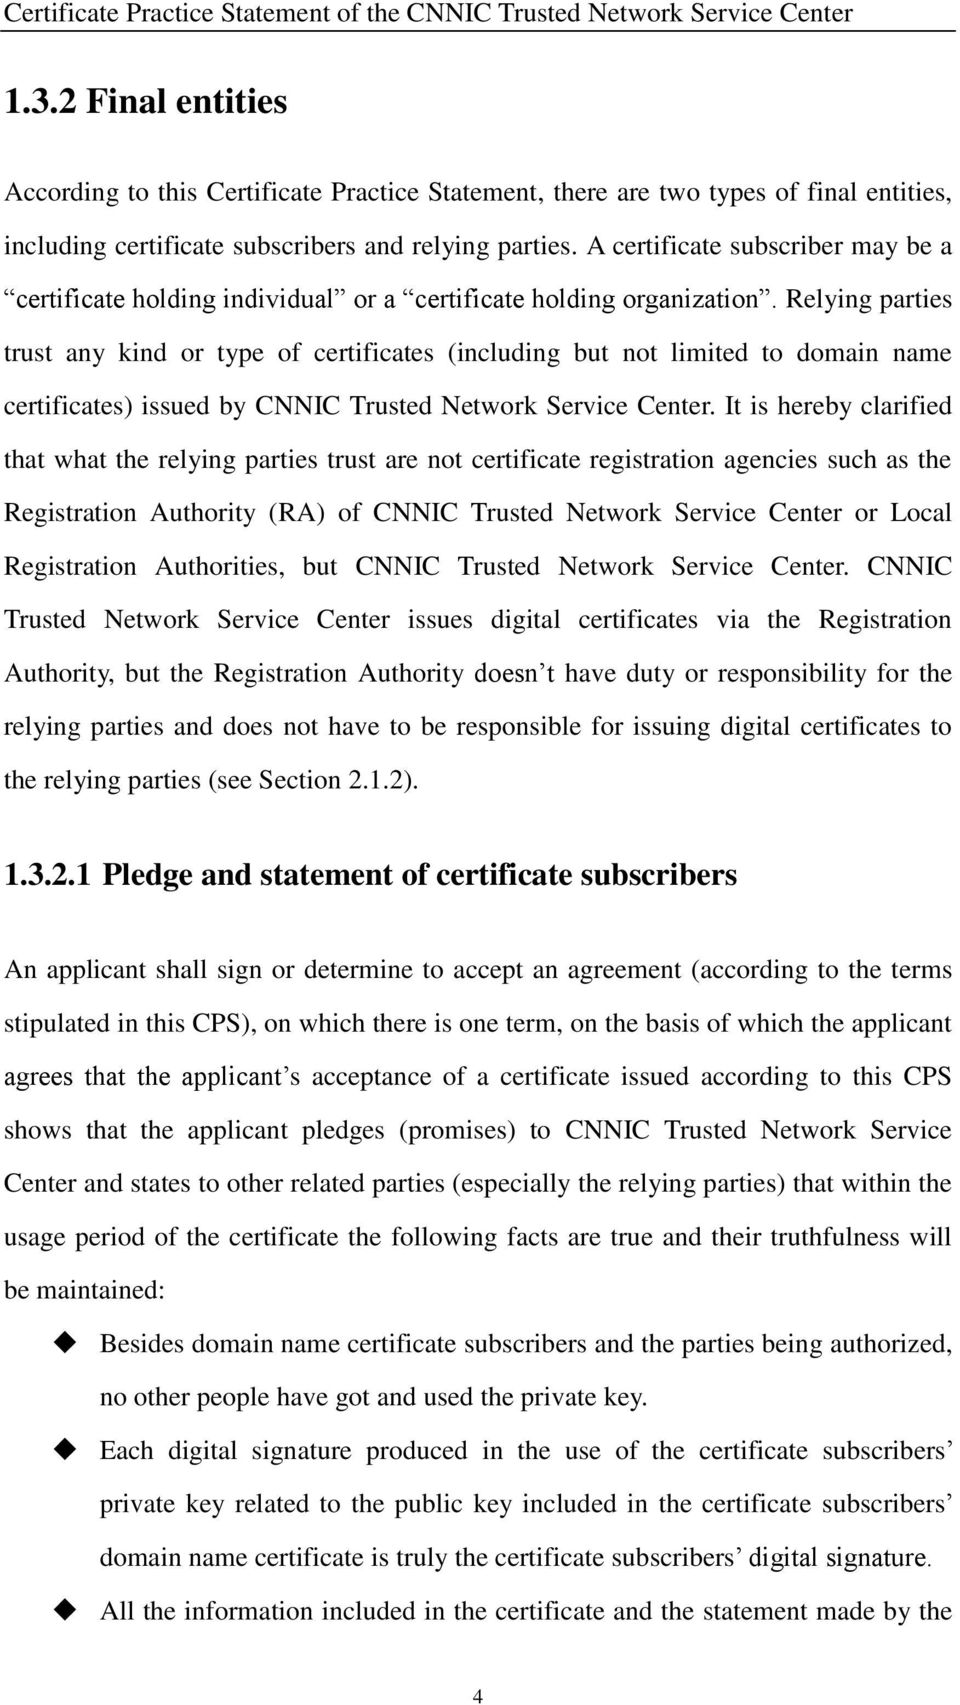 Relying parties trust any kind or type of certificates (including but not limited to domain name certificates) issued by CNNIC Trusted Network Service Center.